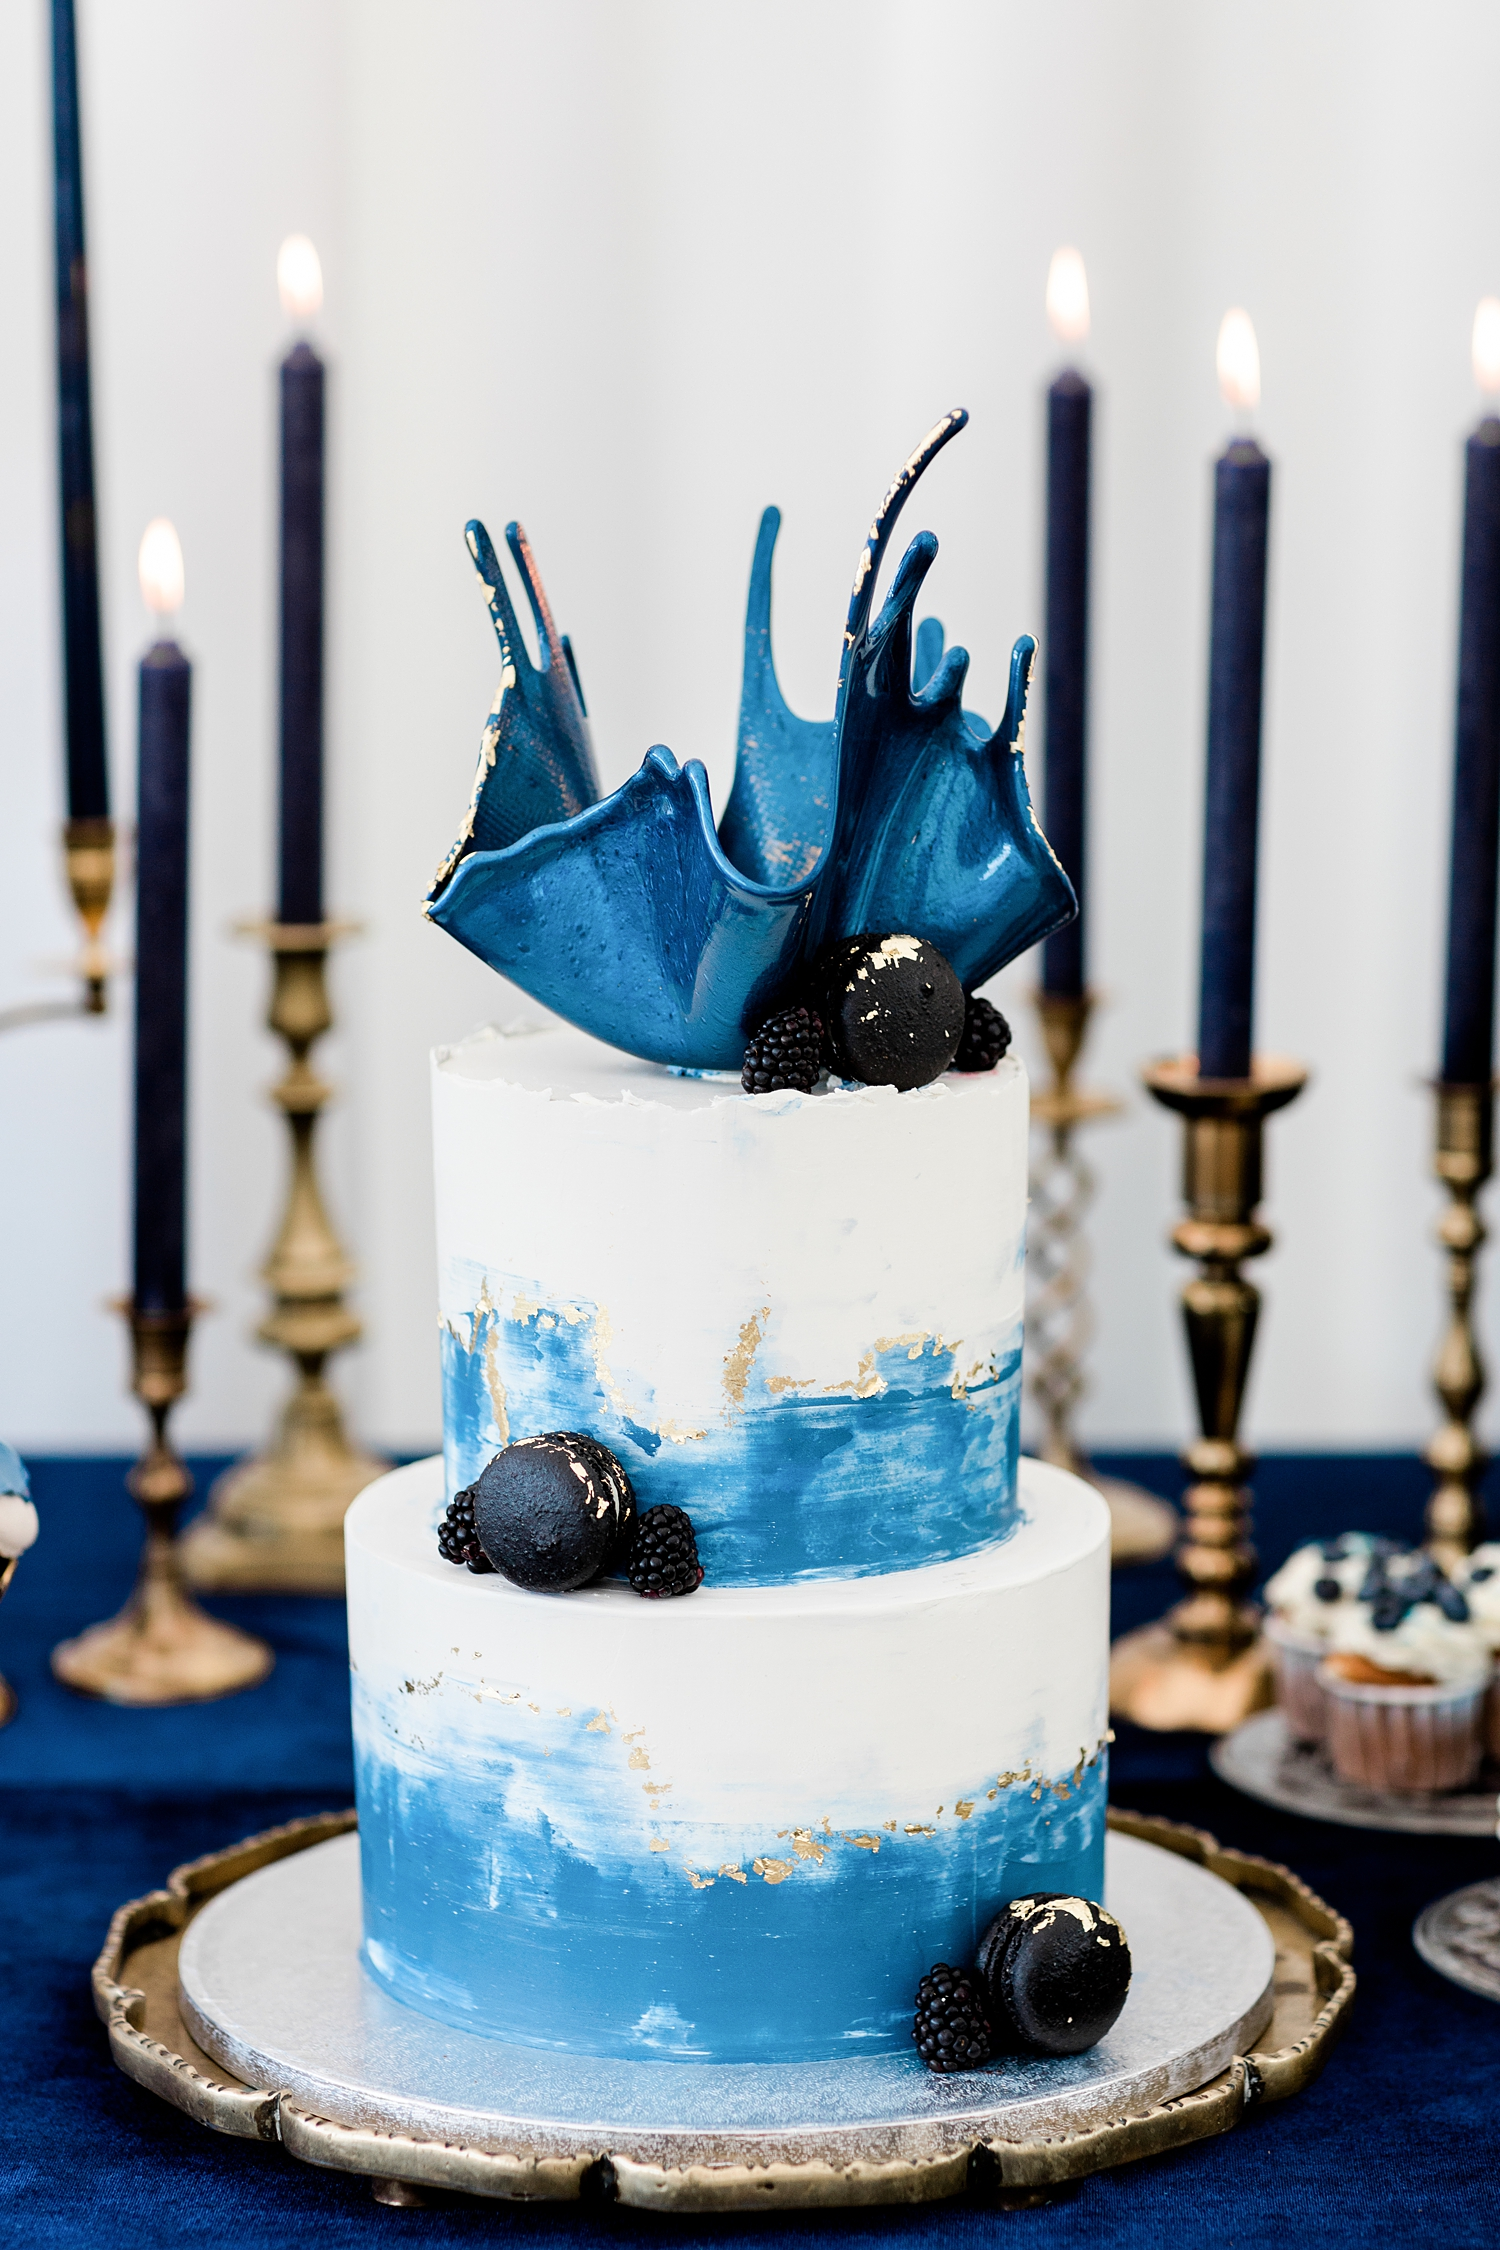 Haute style cake against blue tapers - photo by Jurgita Lukos Photography